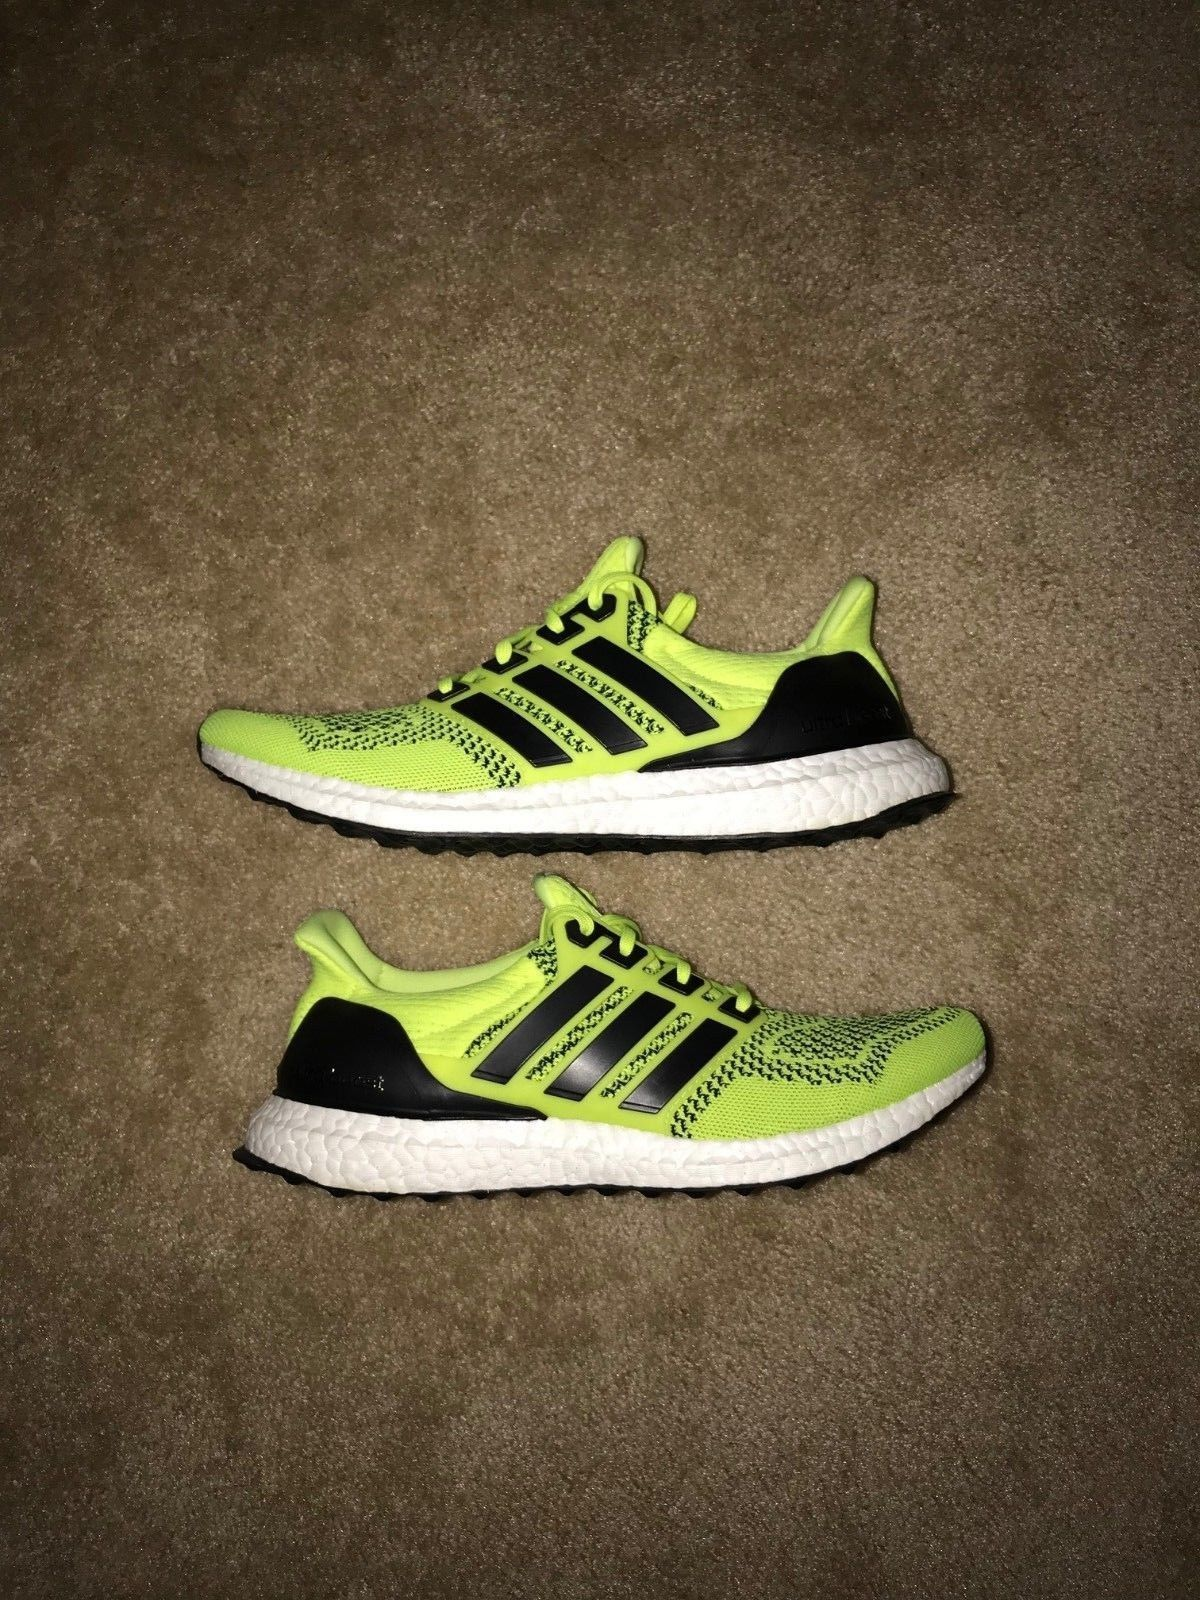 0b08bd51065 NEW ADIDAS ULTRA BOOST 1.0 SOLAR YELLOW VOLT NEON CORE BLACK WHITE PK S77414  10